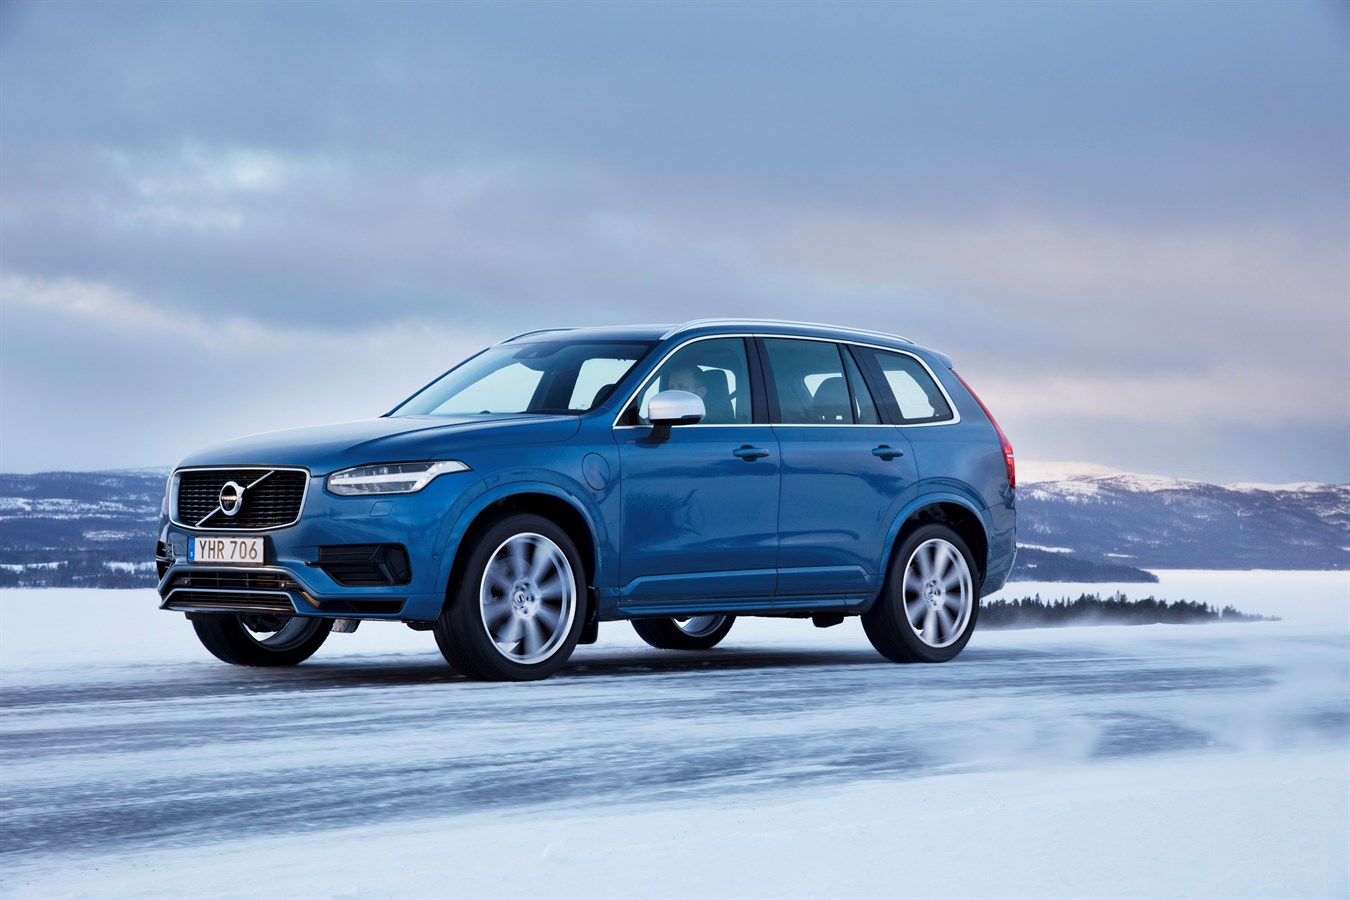 Volvo Xc90 Commercial >> Volvo XC90 T8 R-design - Volvo Cars Global Media Newsroom